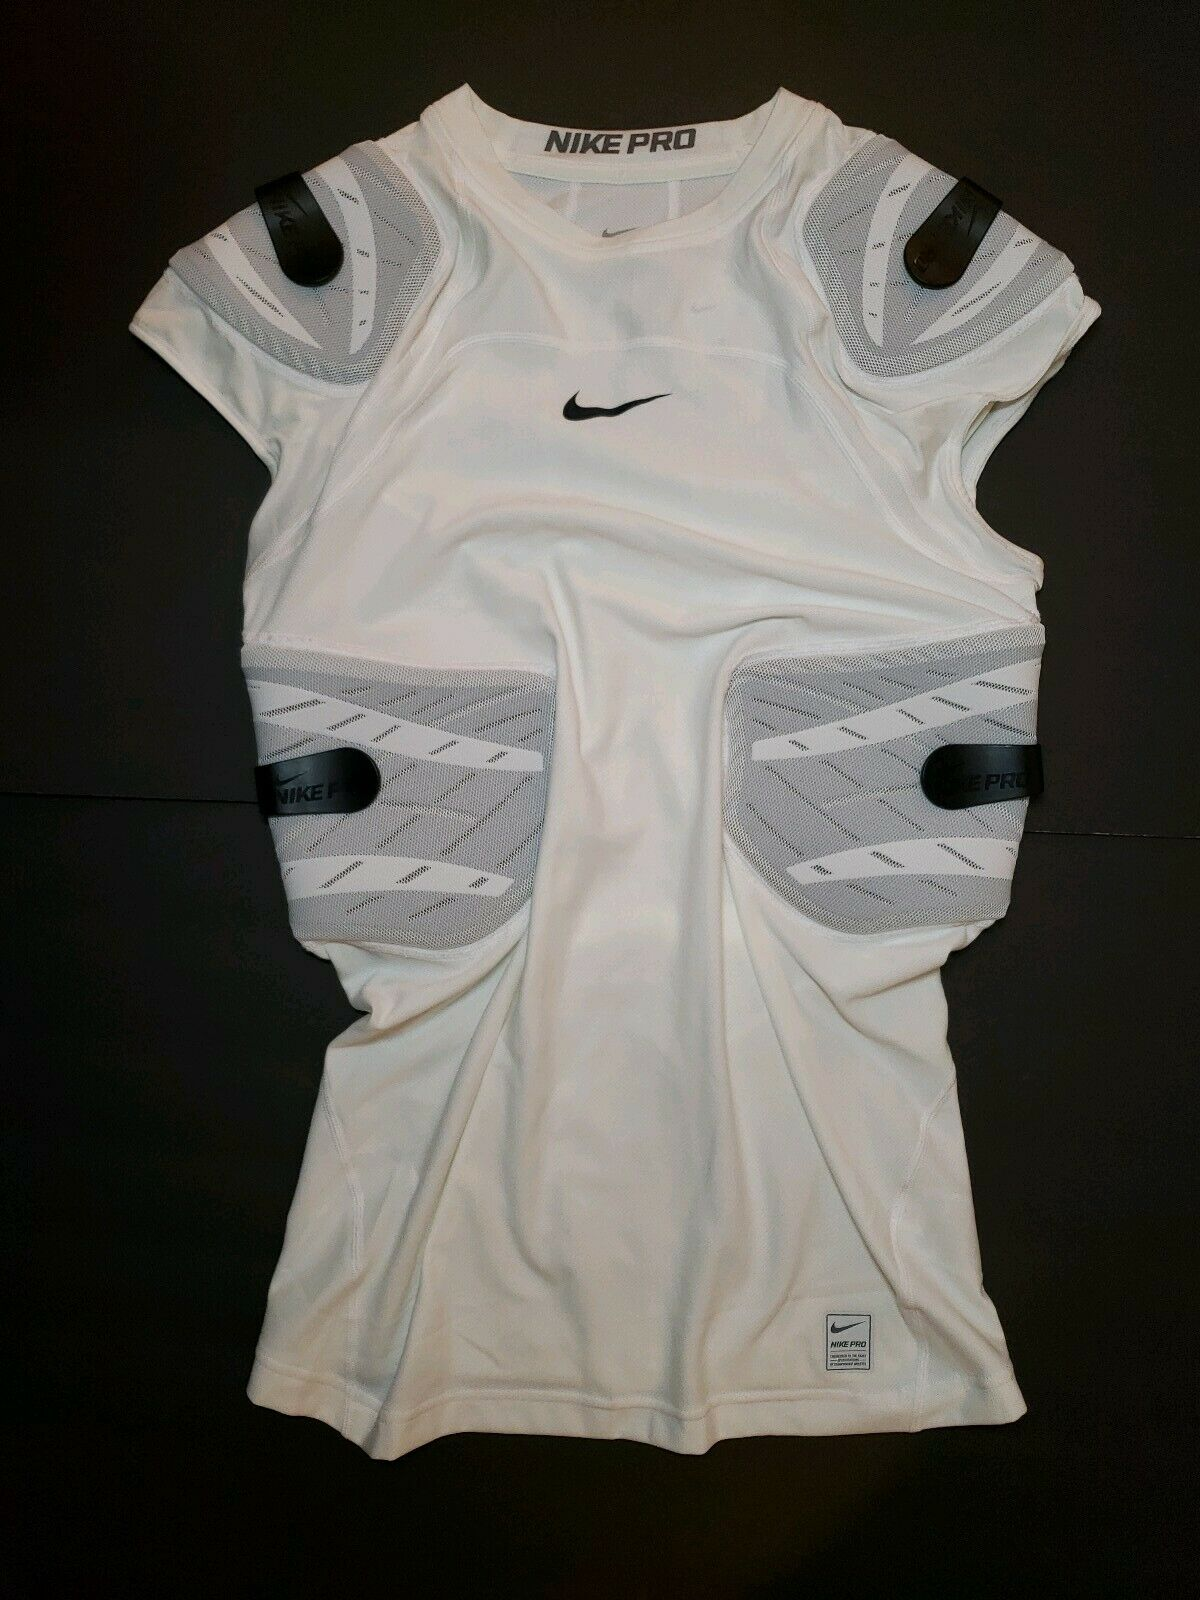 bd3fb655 NIKE PRO HYPERSTRONG COMPRESSION SLEEVELESS 4 PAD FOOTBALL TOP SHIRT WHITE